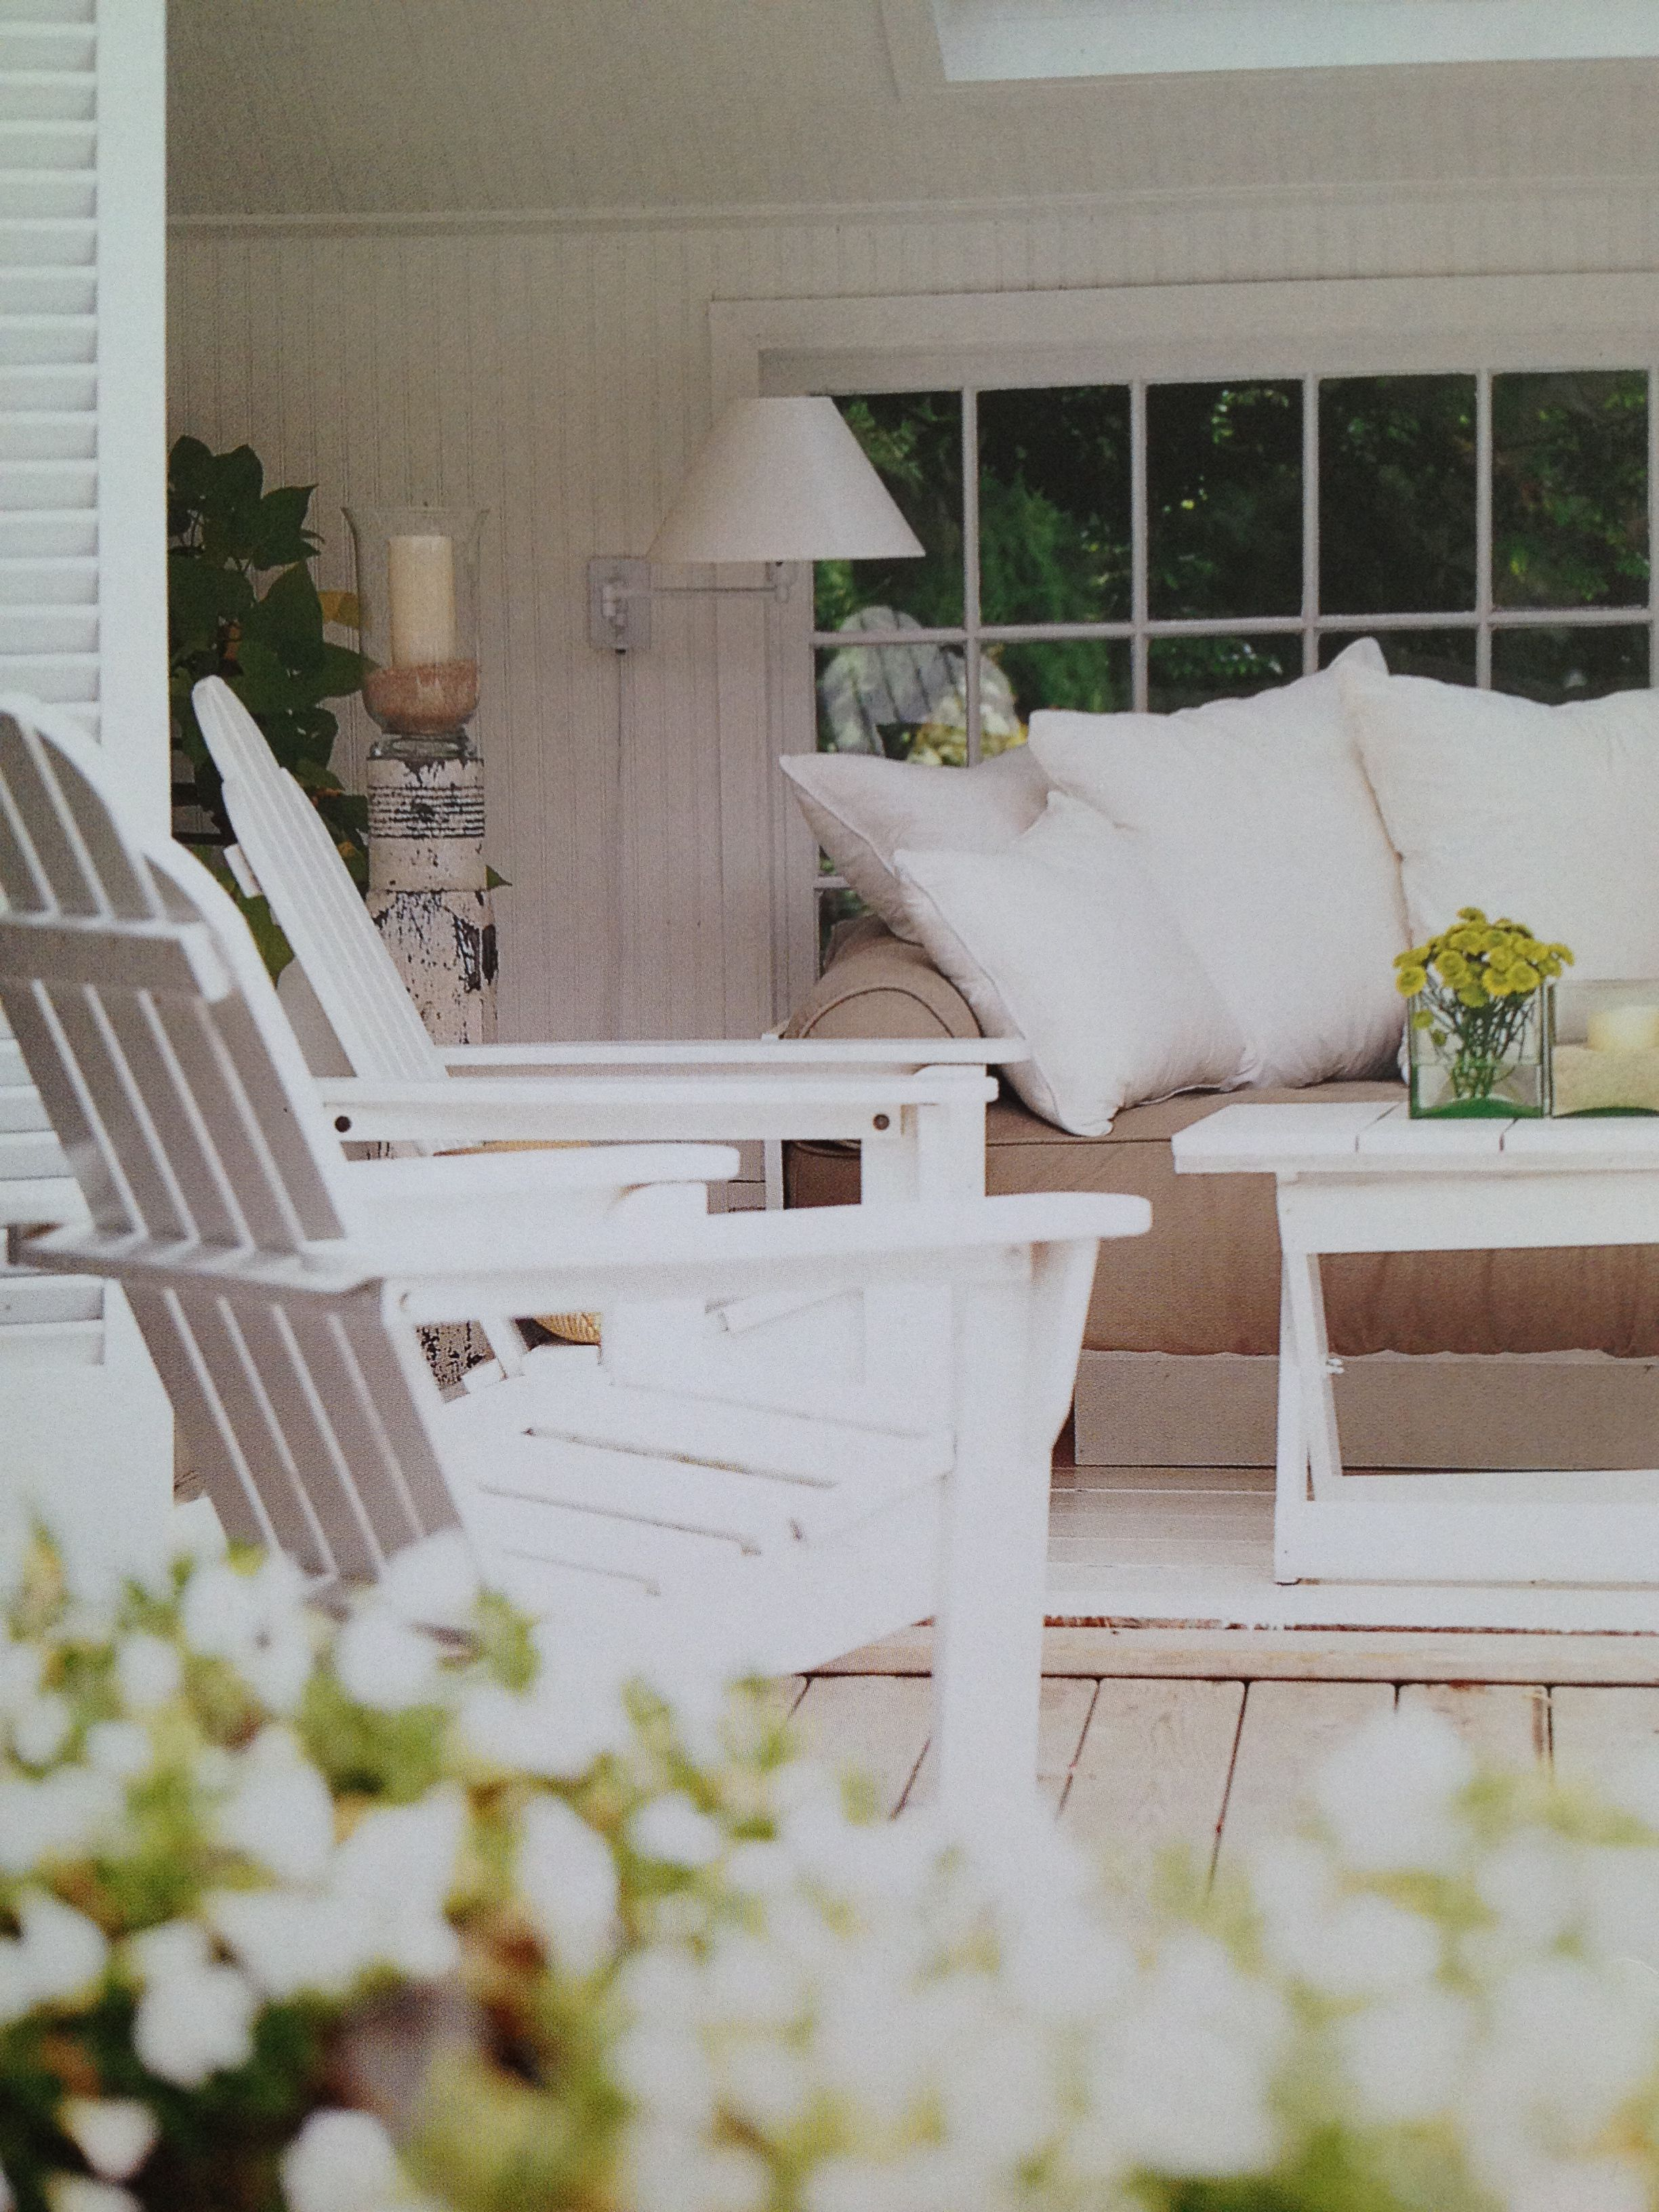 muskoka chairs couch outdoor living room  pottery barn